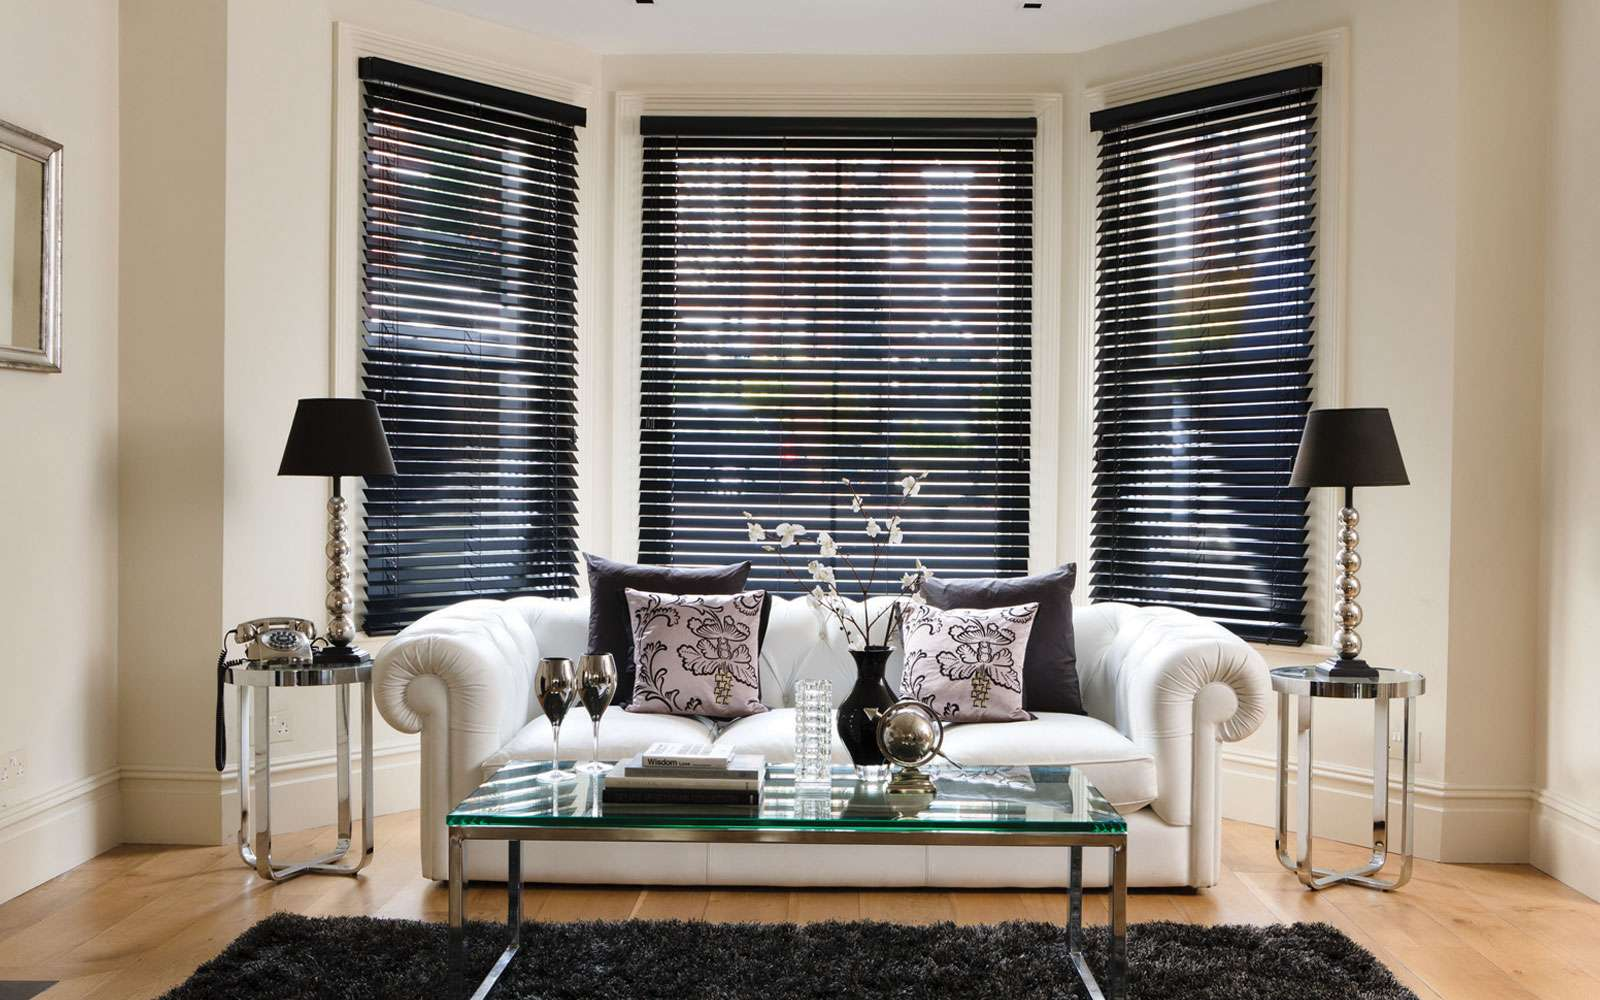 Inspiration West Coast Shutters Shades Outlet Inc